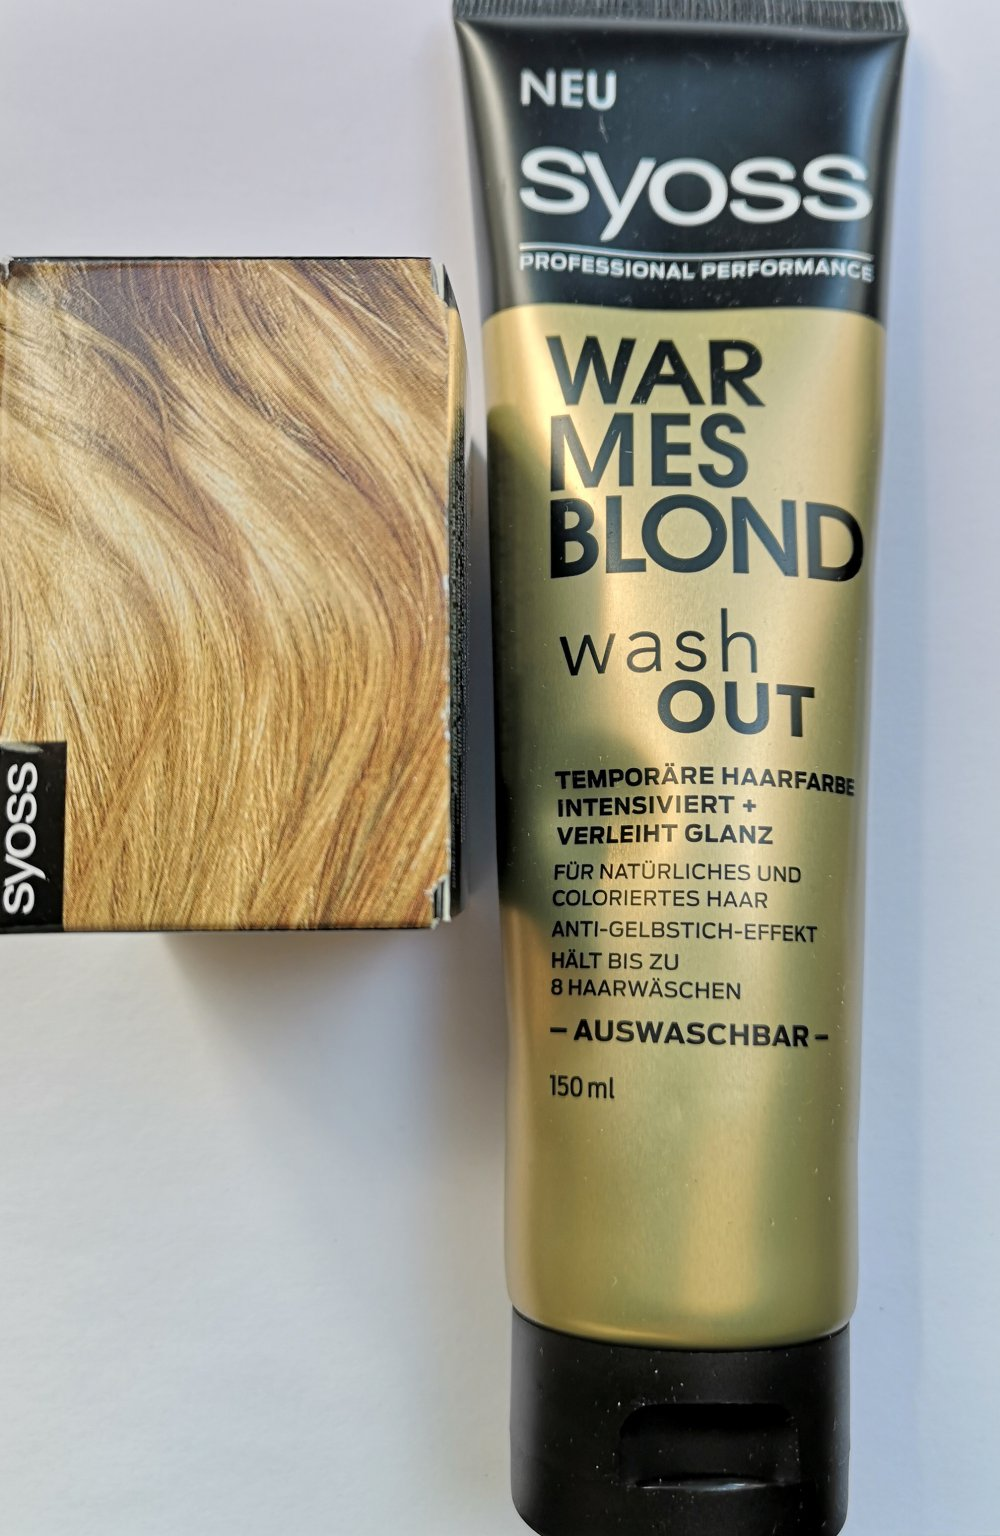 Syoss warmes blond wash out